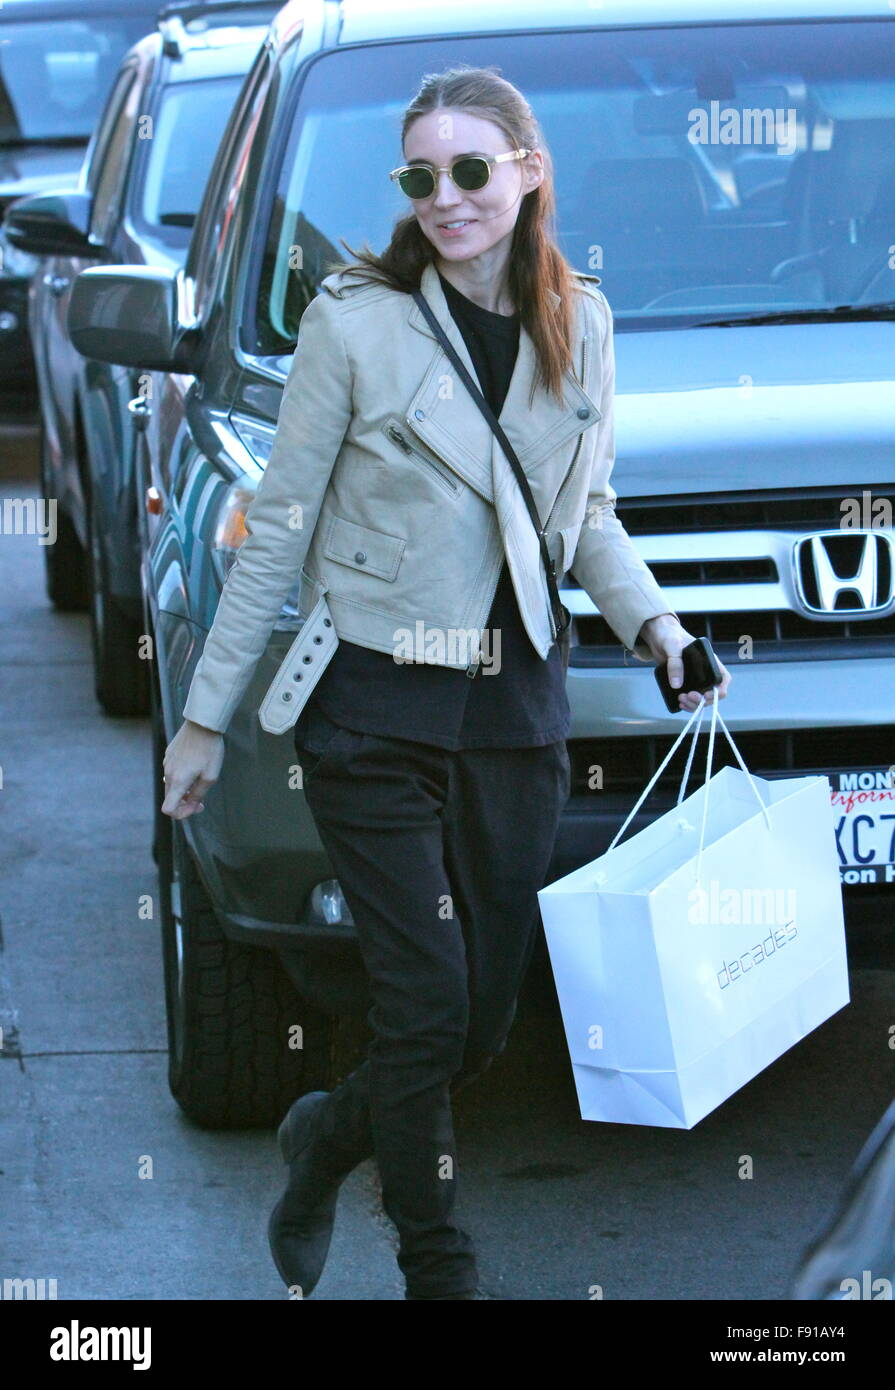 West Hollywood, California, USA. 12th Dec, 2015. Rooney Mara , West Hollywood, CA, USA Credit:  The Media Circuit/Alamy Stock Photo